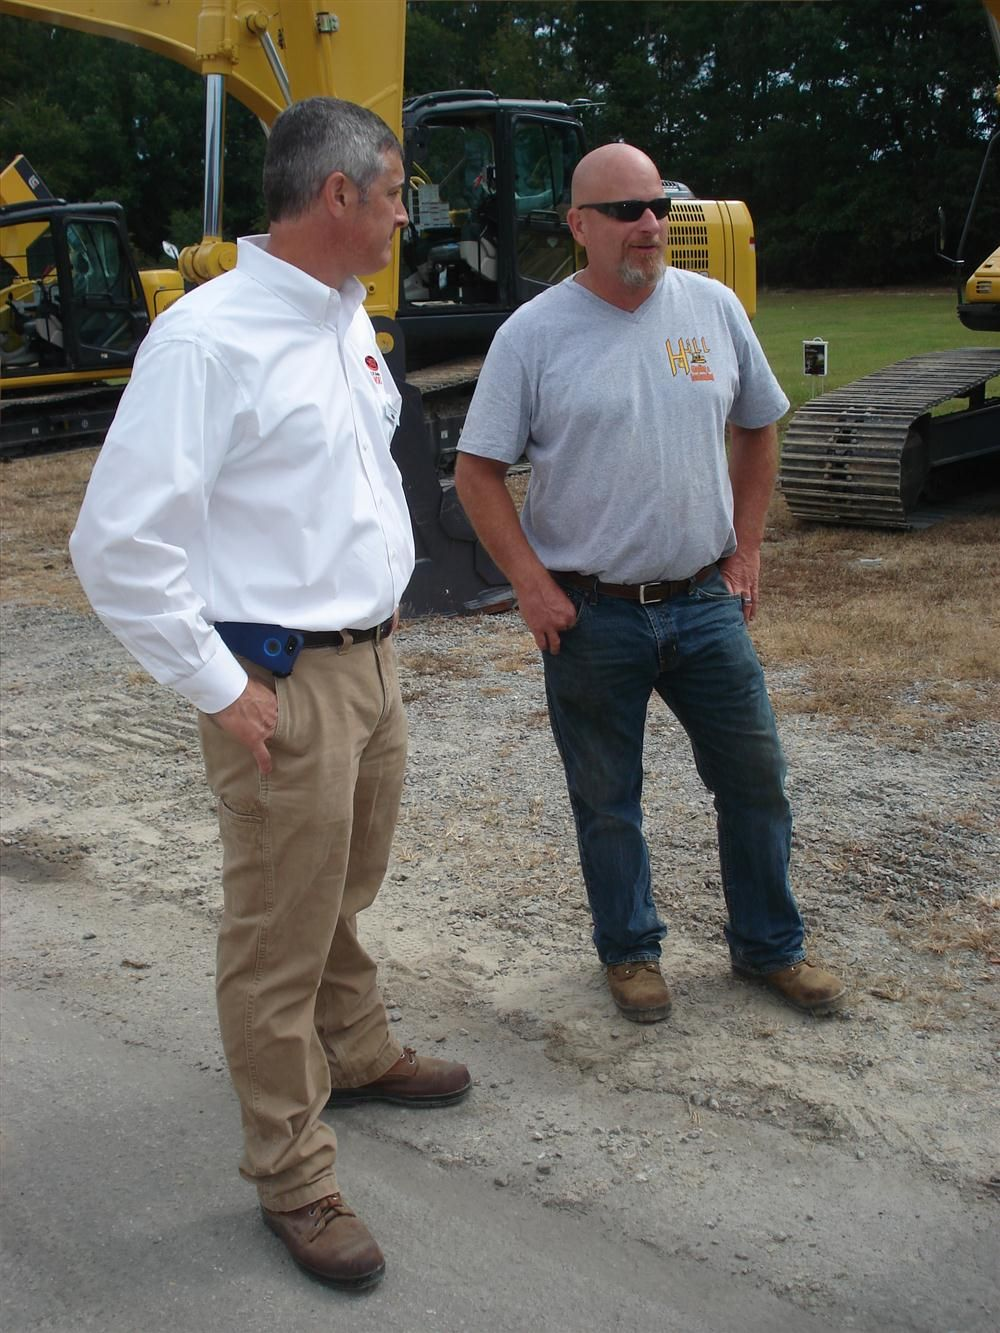 Tom MacGibbon (L) of Company Wrench talks about the Kobelco product line with Eric Hill of Hill Grading & Landscaping in Youngsville, N.C.